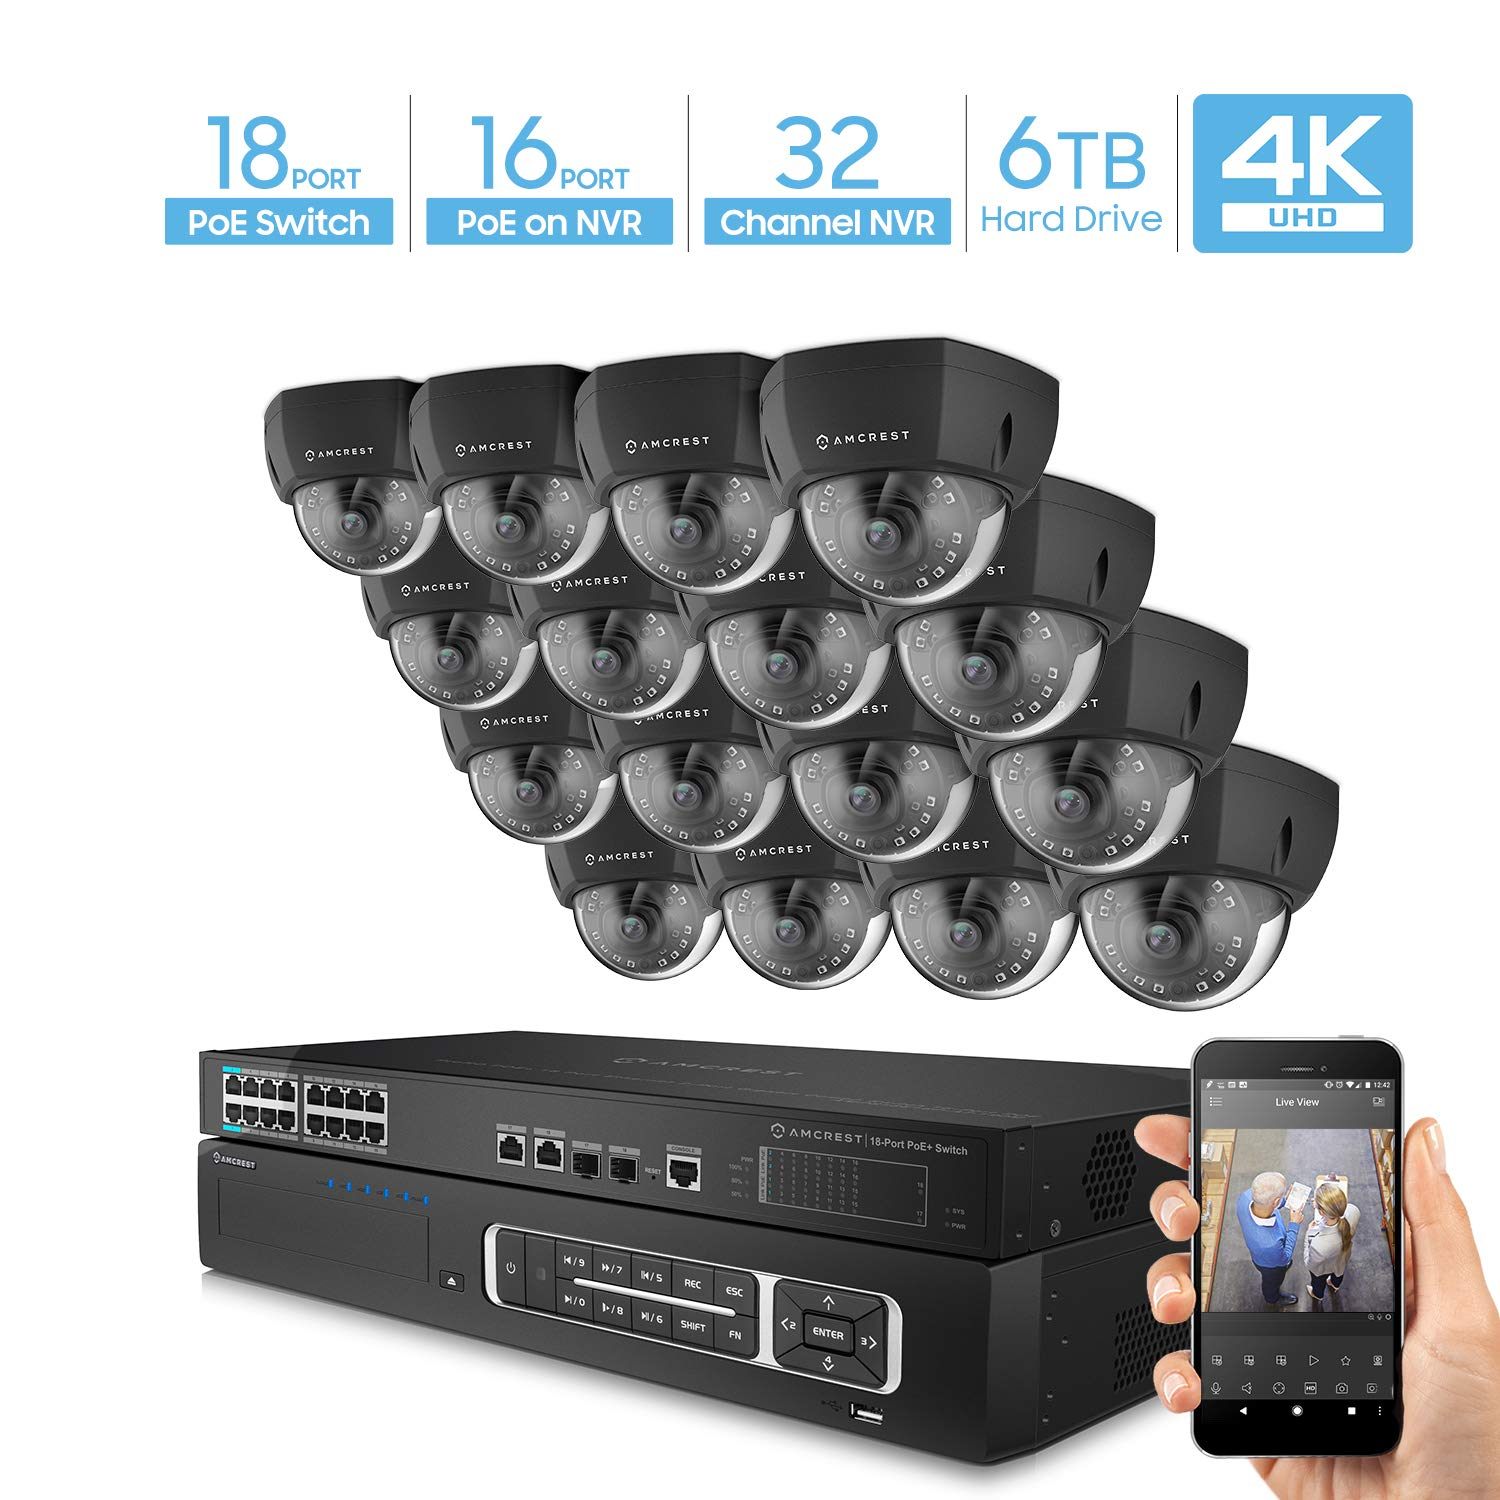 Amcrest 4K UltraHD Video Security Camera System w/ 4K 32CH PoE NVR, (16) x 4K Dome IP PoE Cameras, 18-Port PoE+ Switch w/Gigabit Uplink, Pre-Installed 6TB Hard Drive (Supports up to 24TB) (Black) by Amcrest